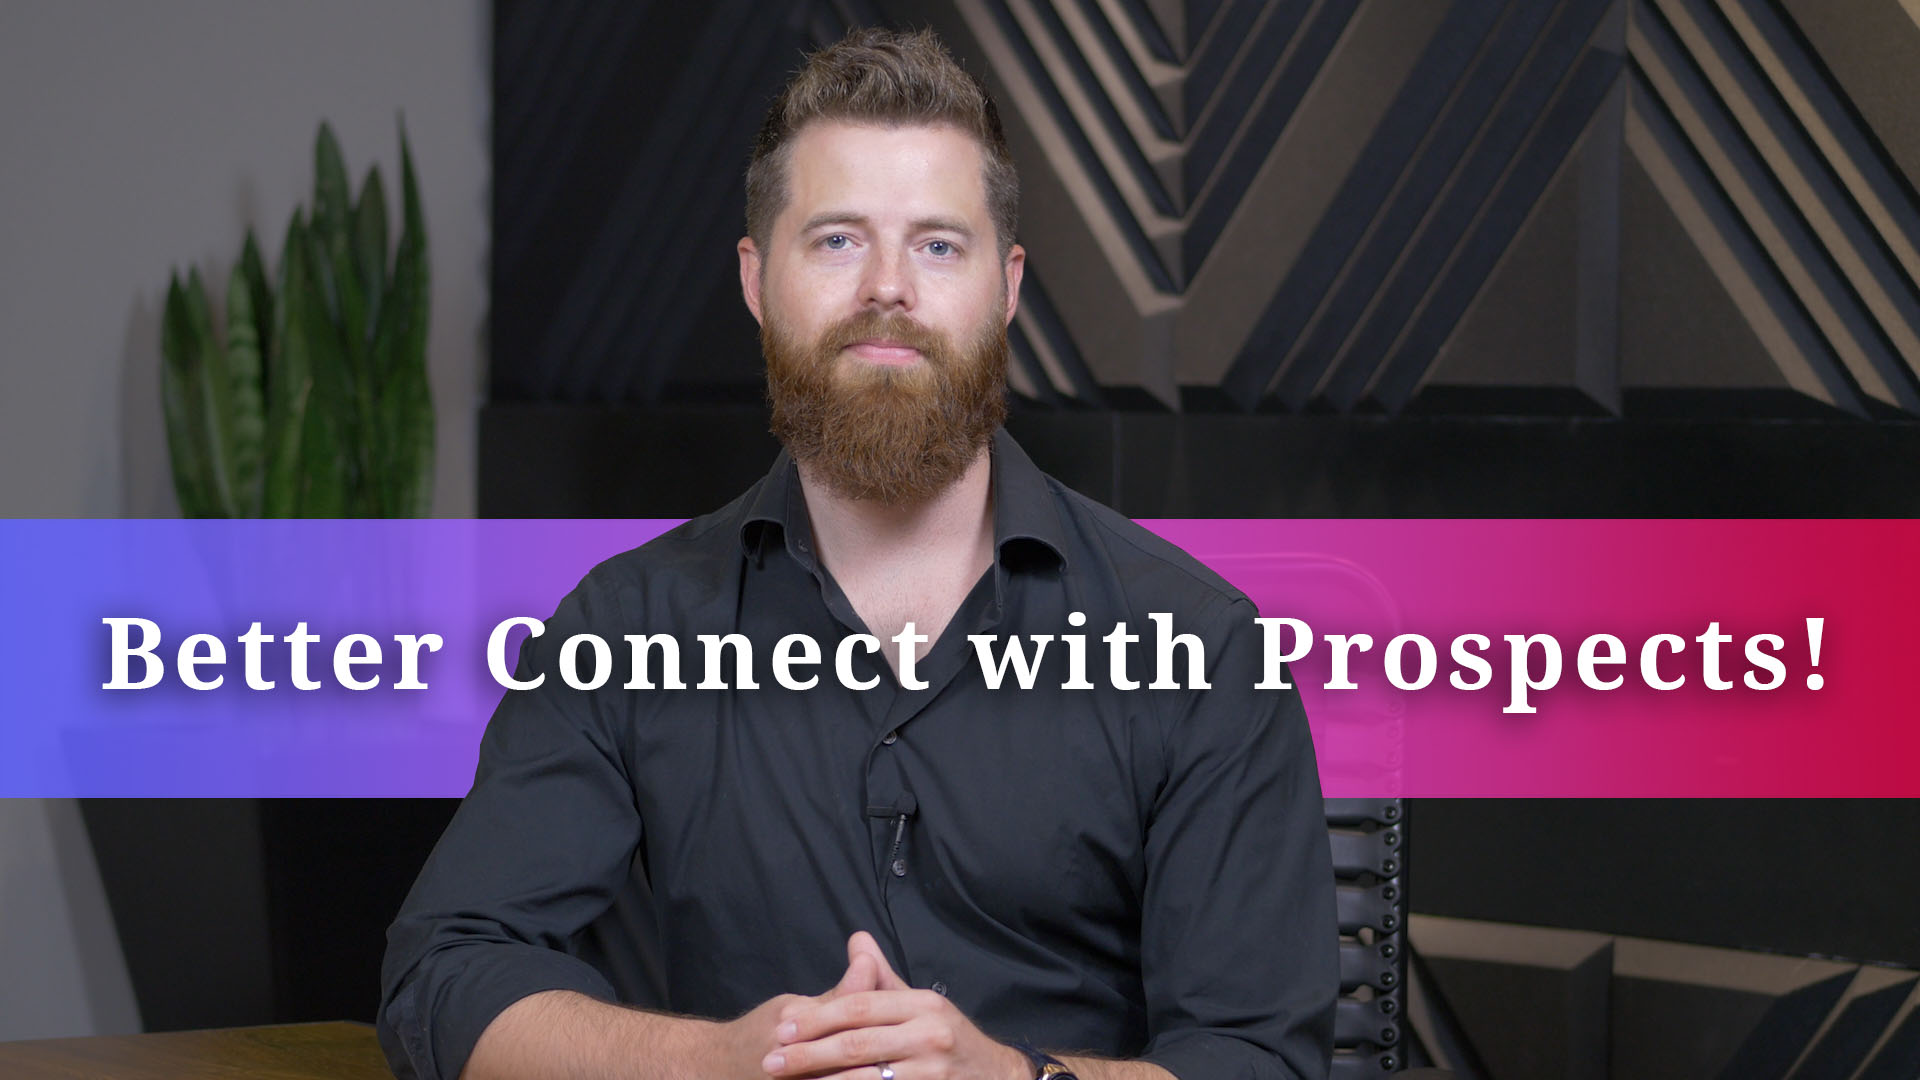 The Best Way To Connect With Your Prospects